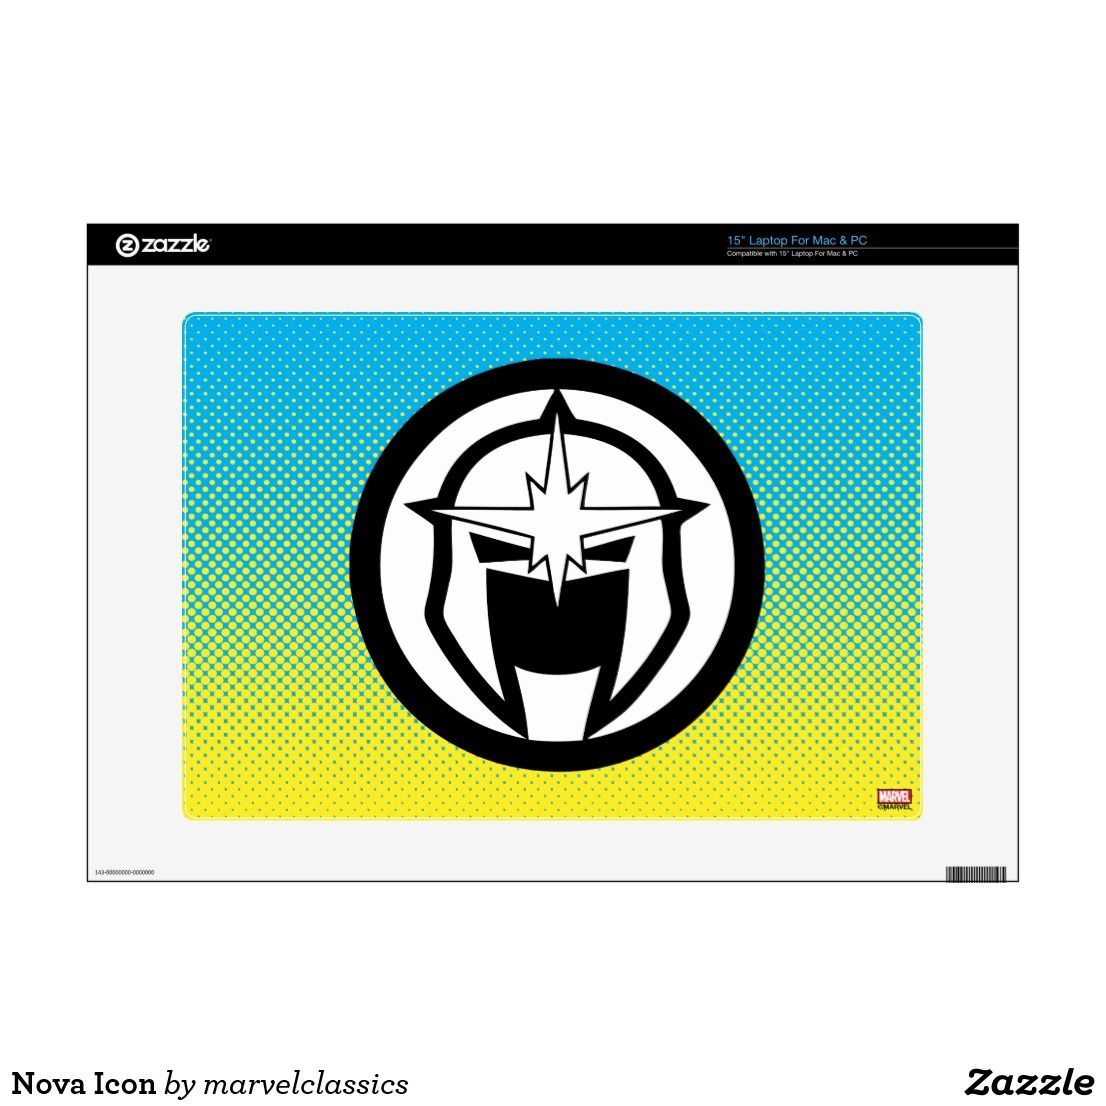 Nova Icon Skin For Laptop Skin nova, Nova